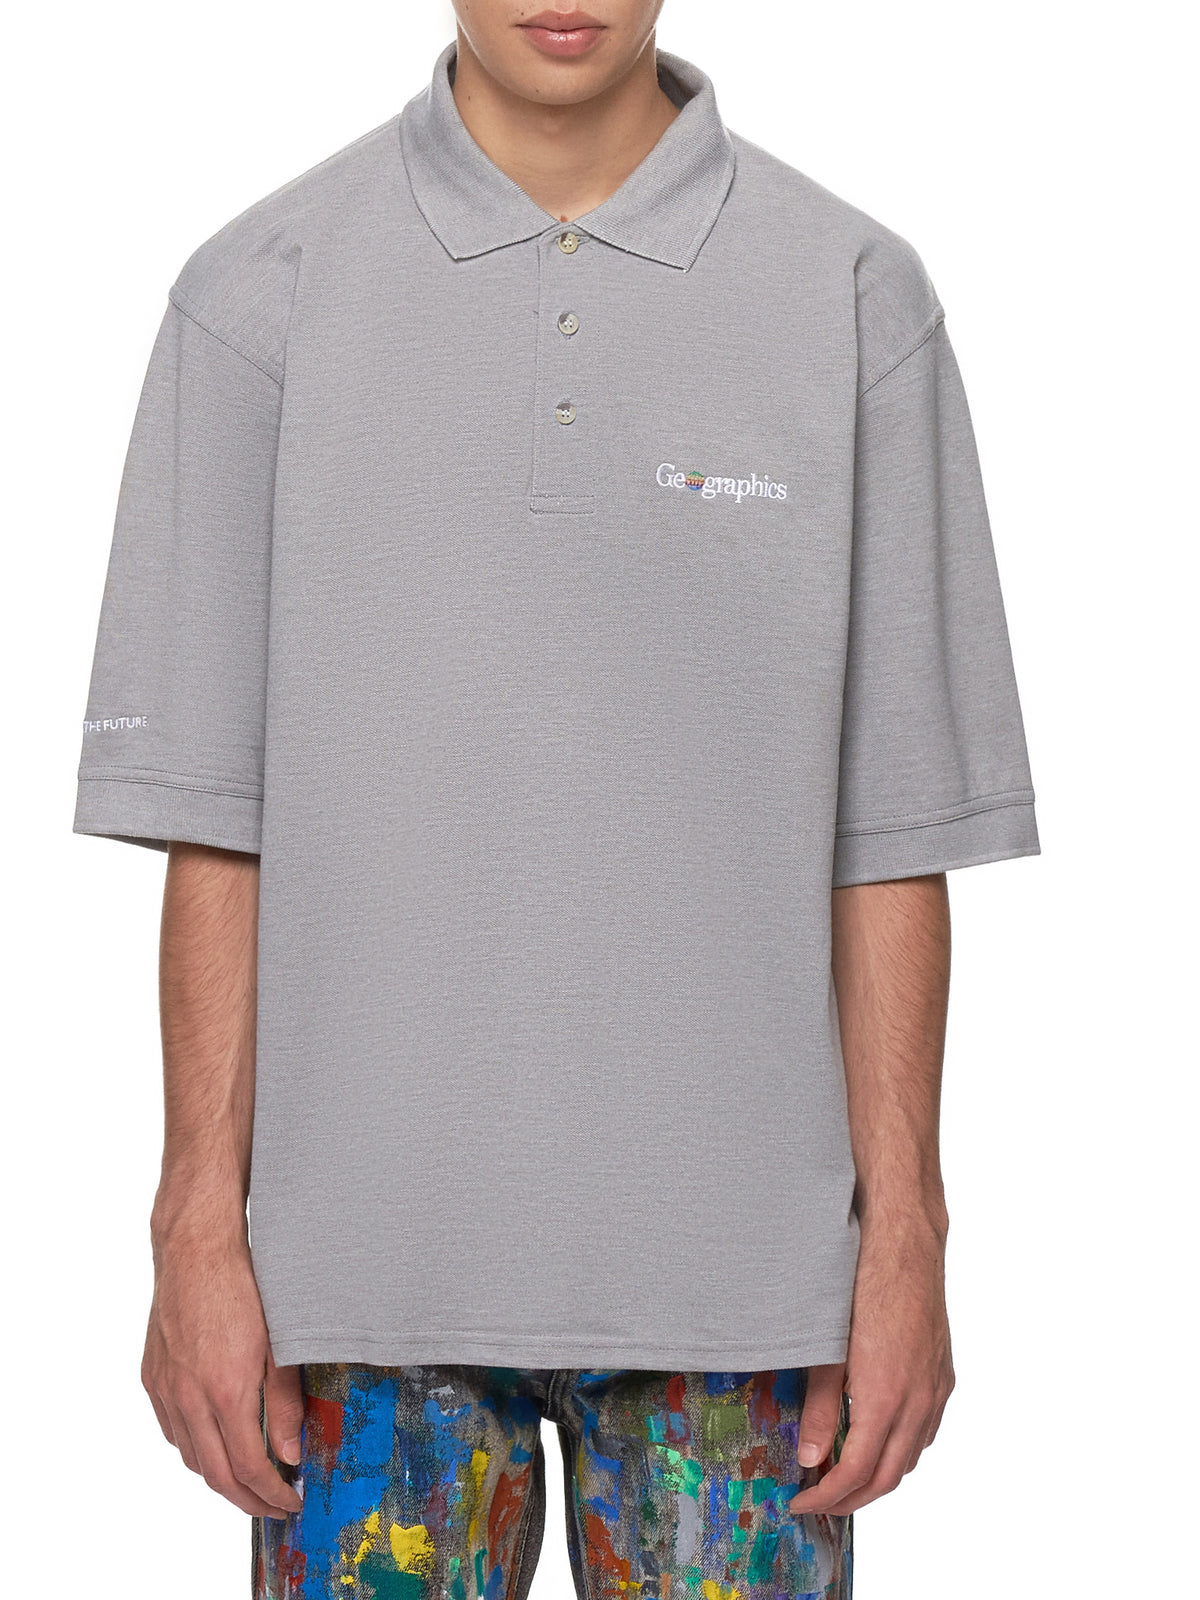 'Geographics' Polo Shirt (GEOGRAPHICS-POLO-GREY)